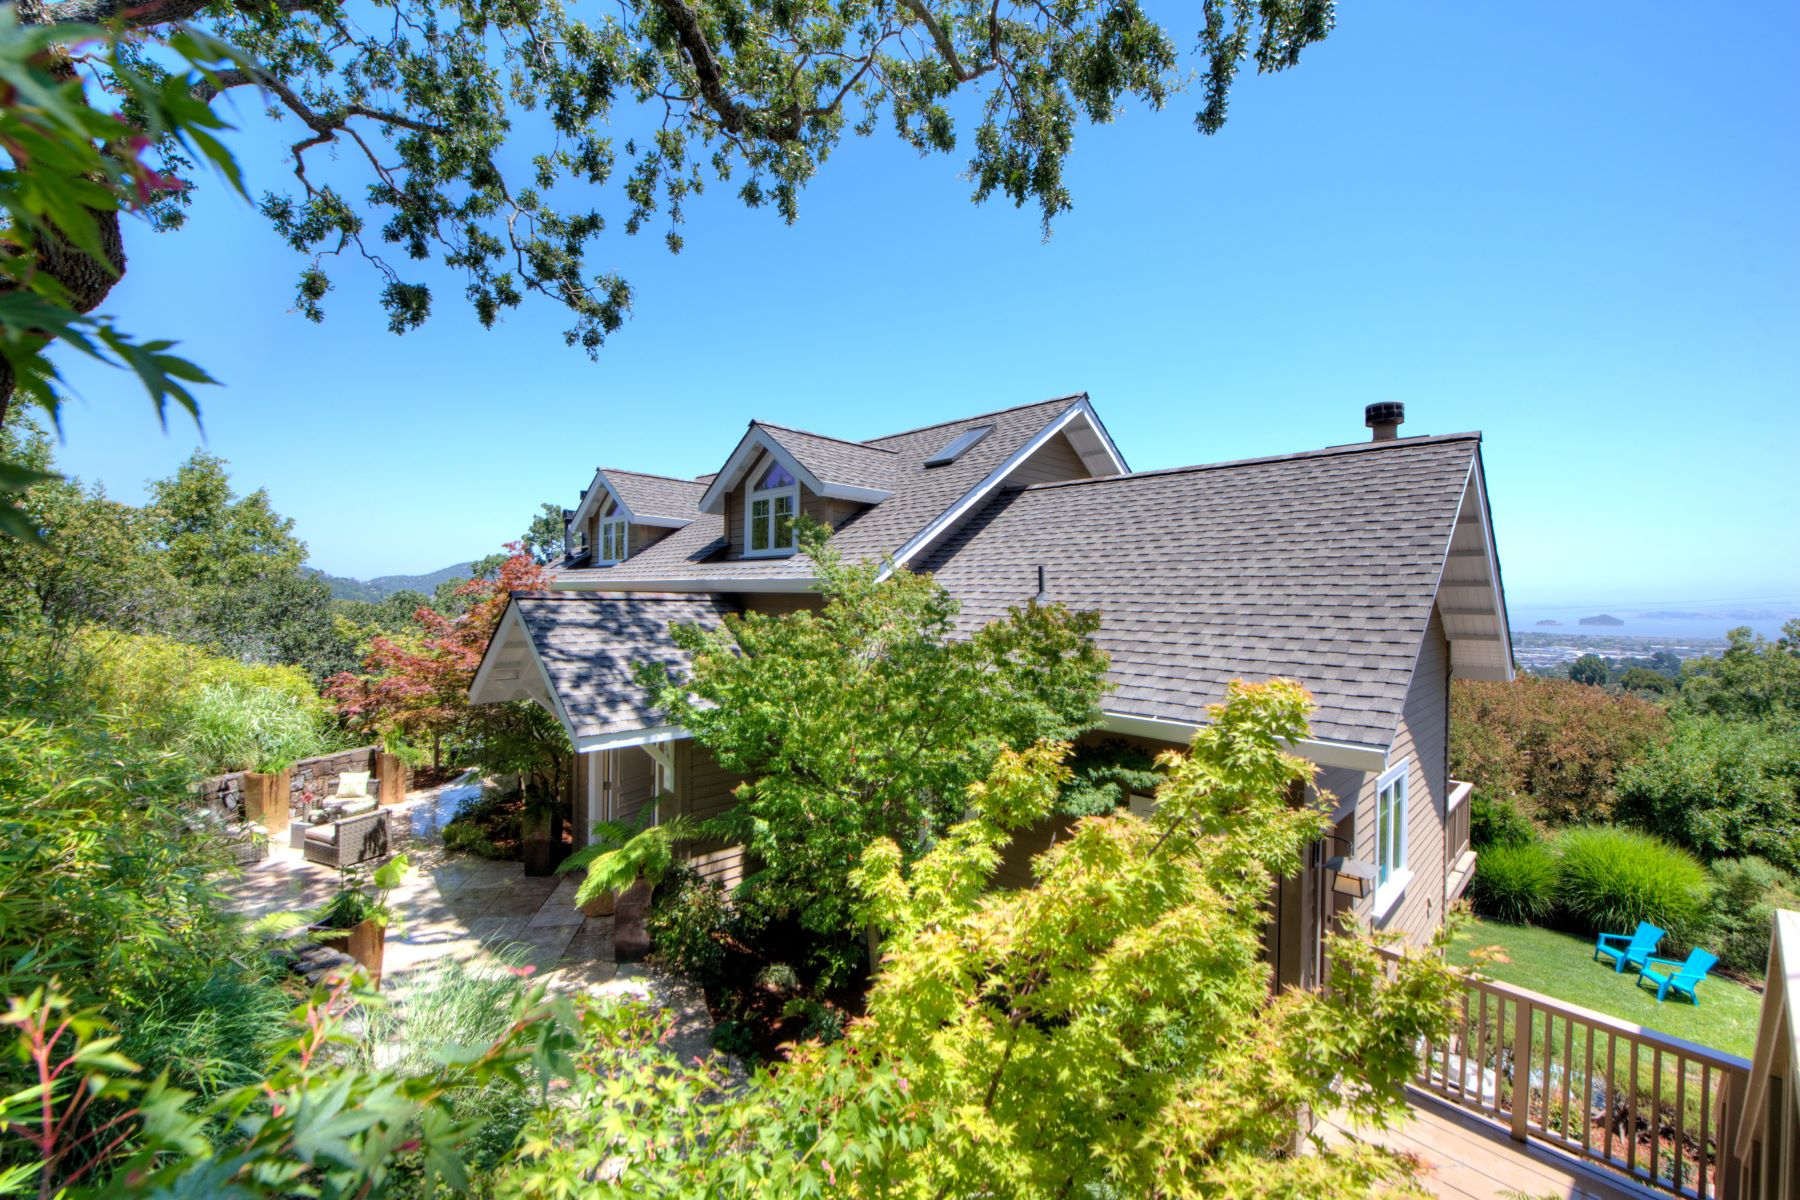 Single Family Home for Sale at Contemporary Ridge-Top Living with Spectacular Bay Views 78 Southern Heights San Rafael, California, 94901 United States